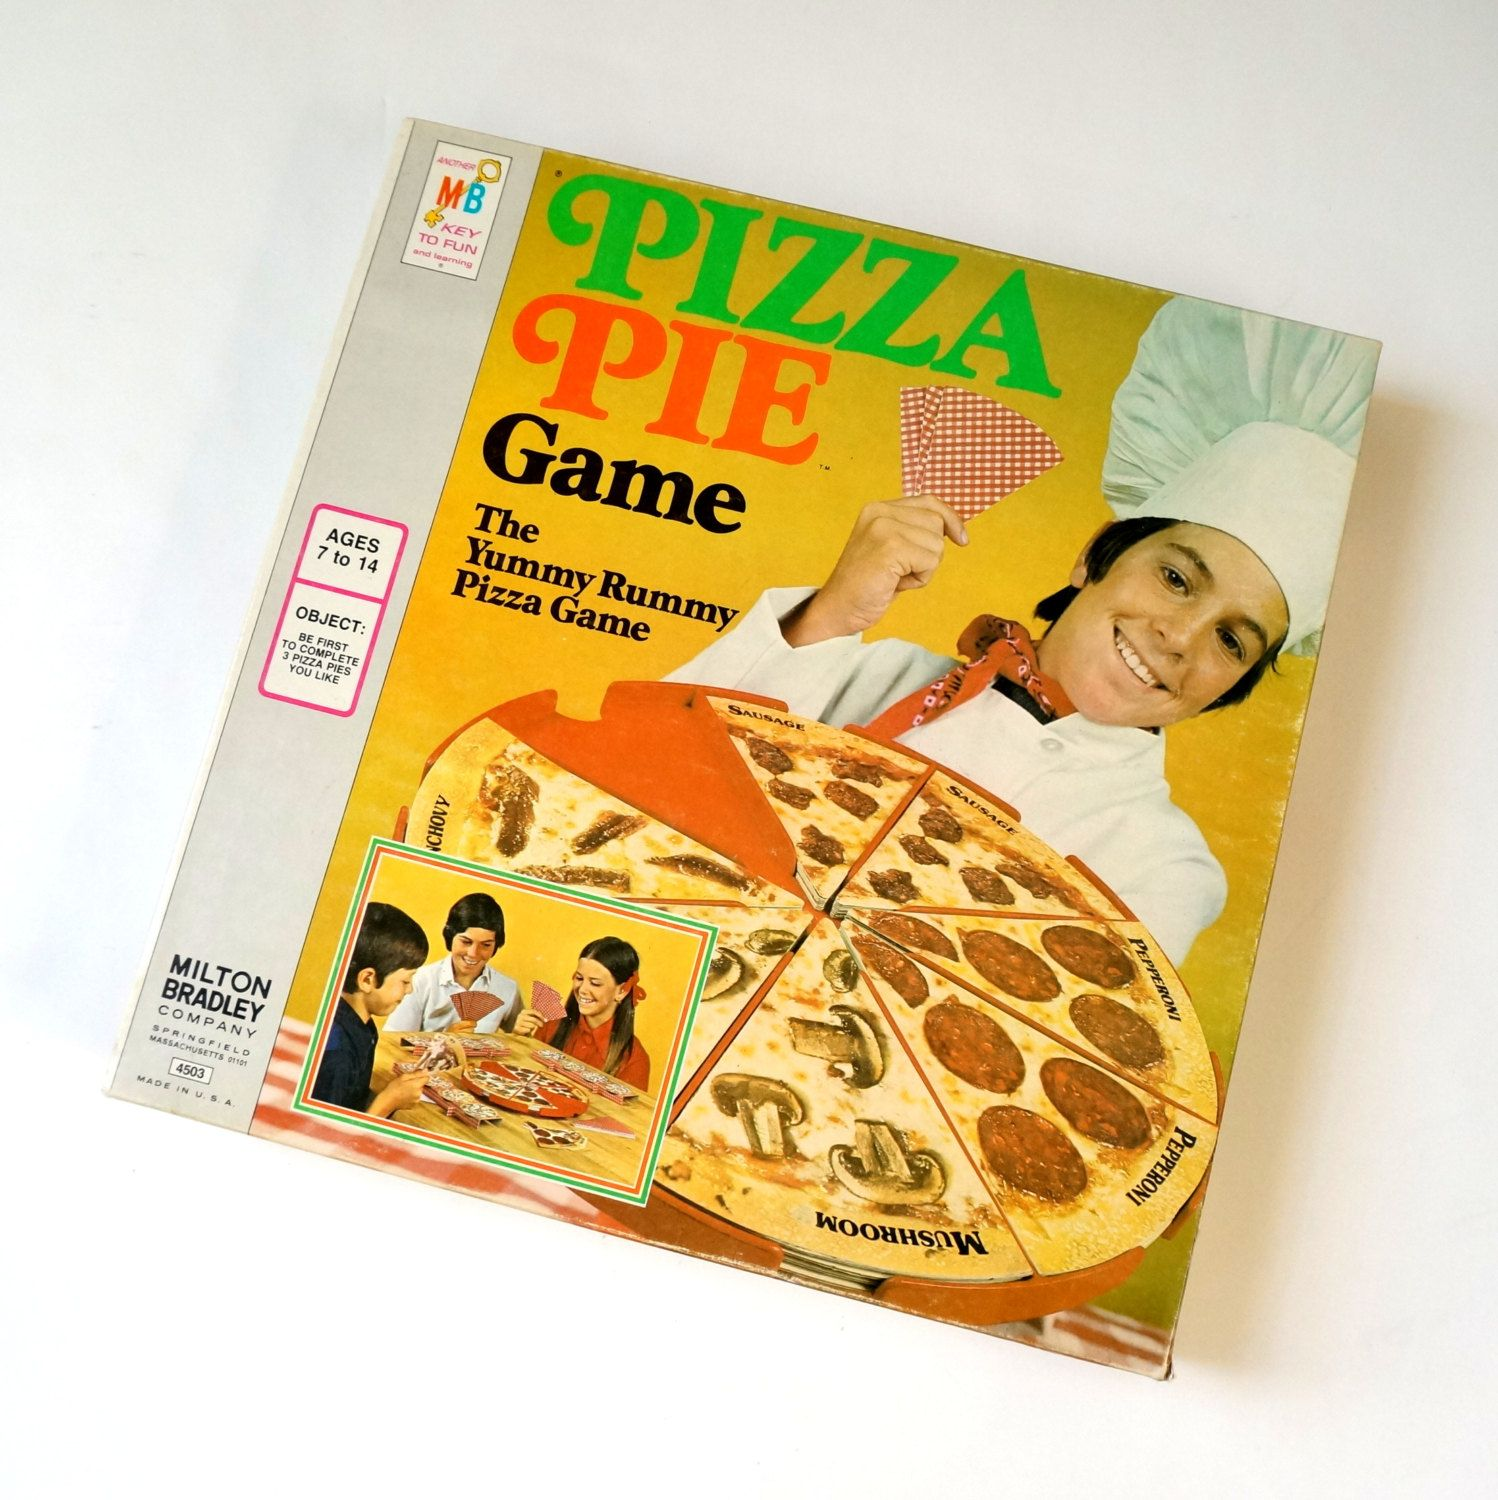 MIlton Bradley Pizza Pie Game 1974 / The Yummy Rummy Vintage Childrens Game  by AttysSproutVintage on